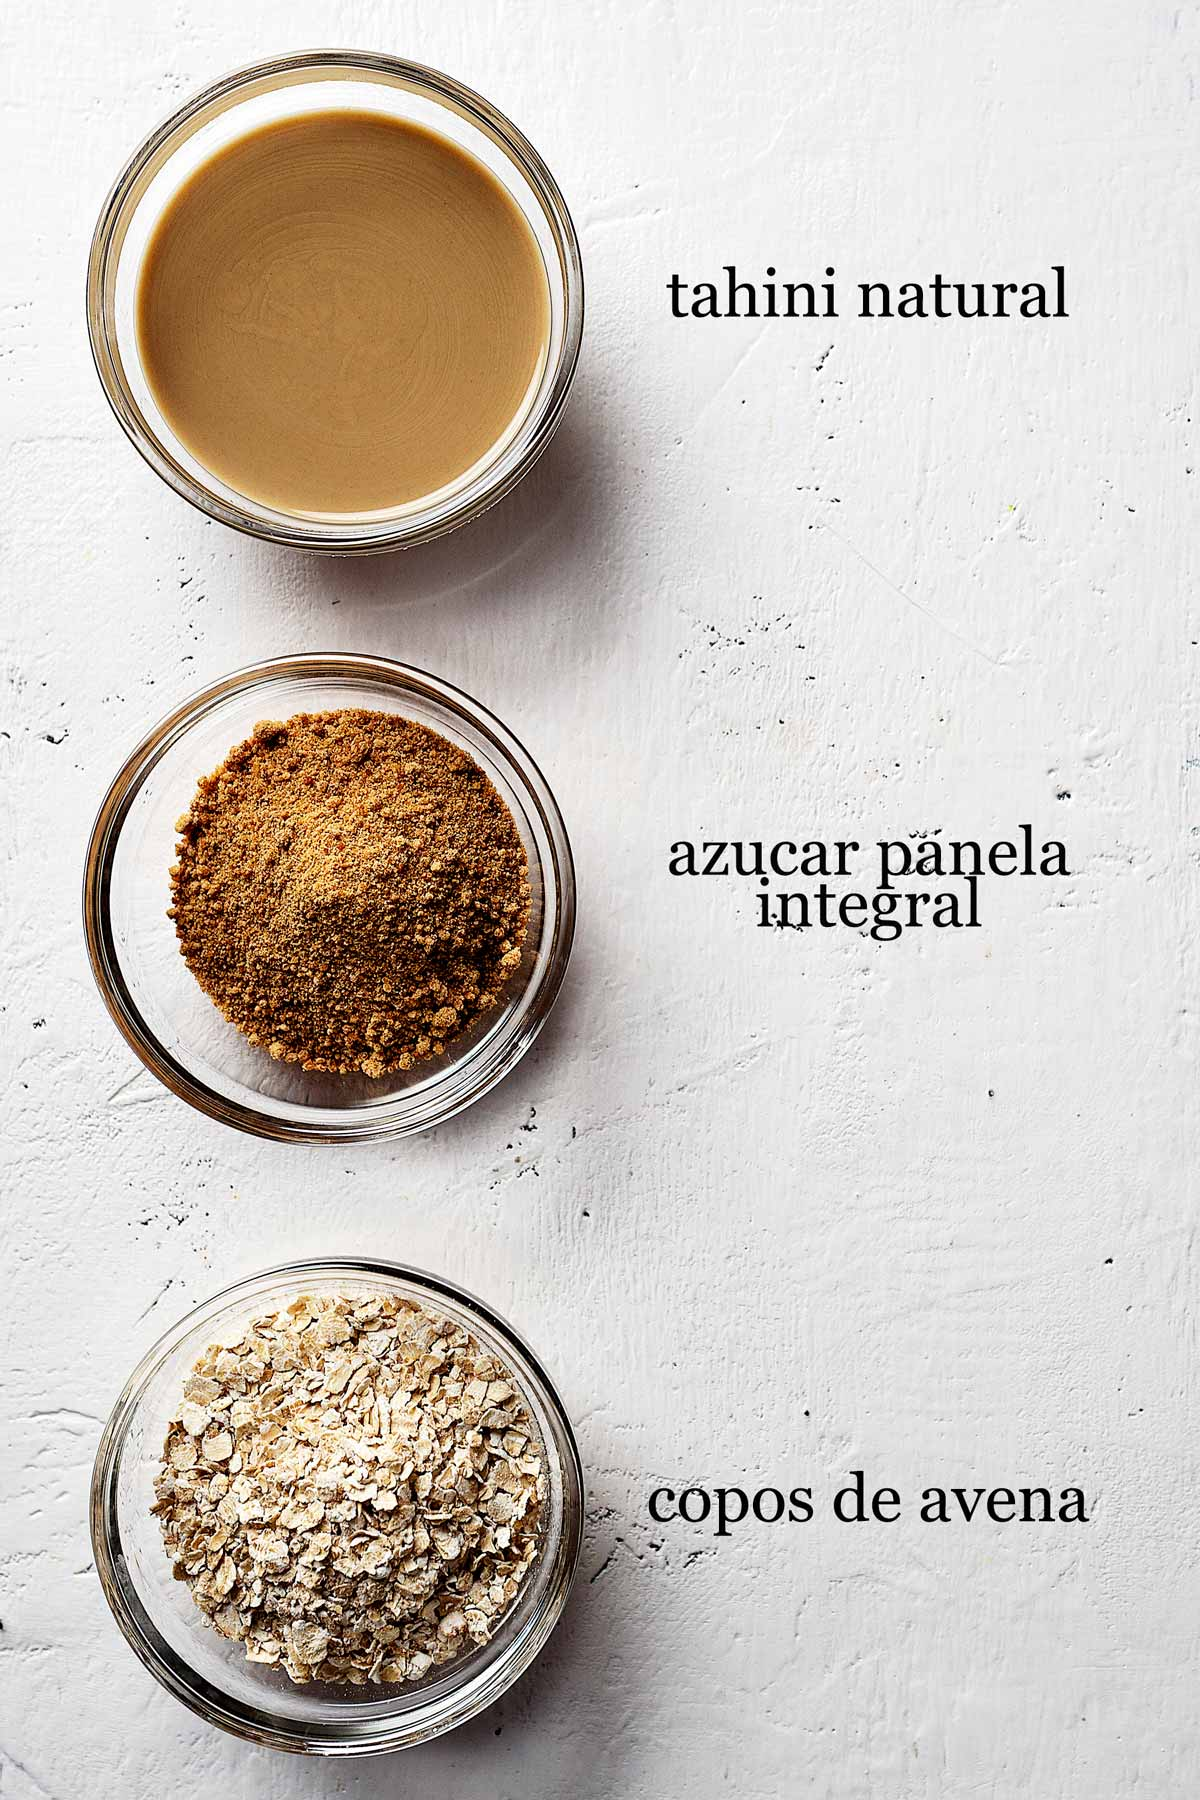 ingredientes para galletas de tahini saludables.